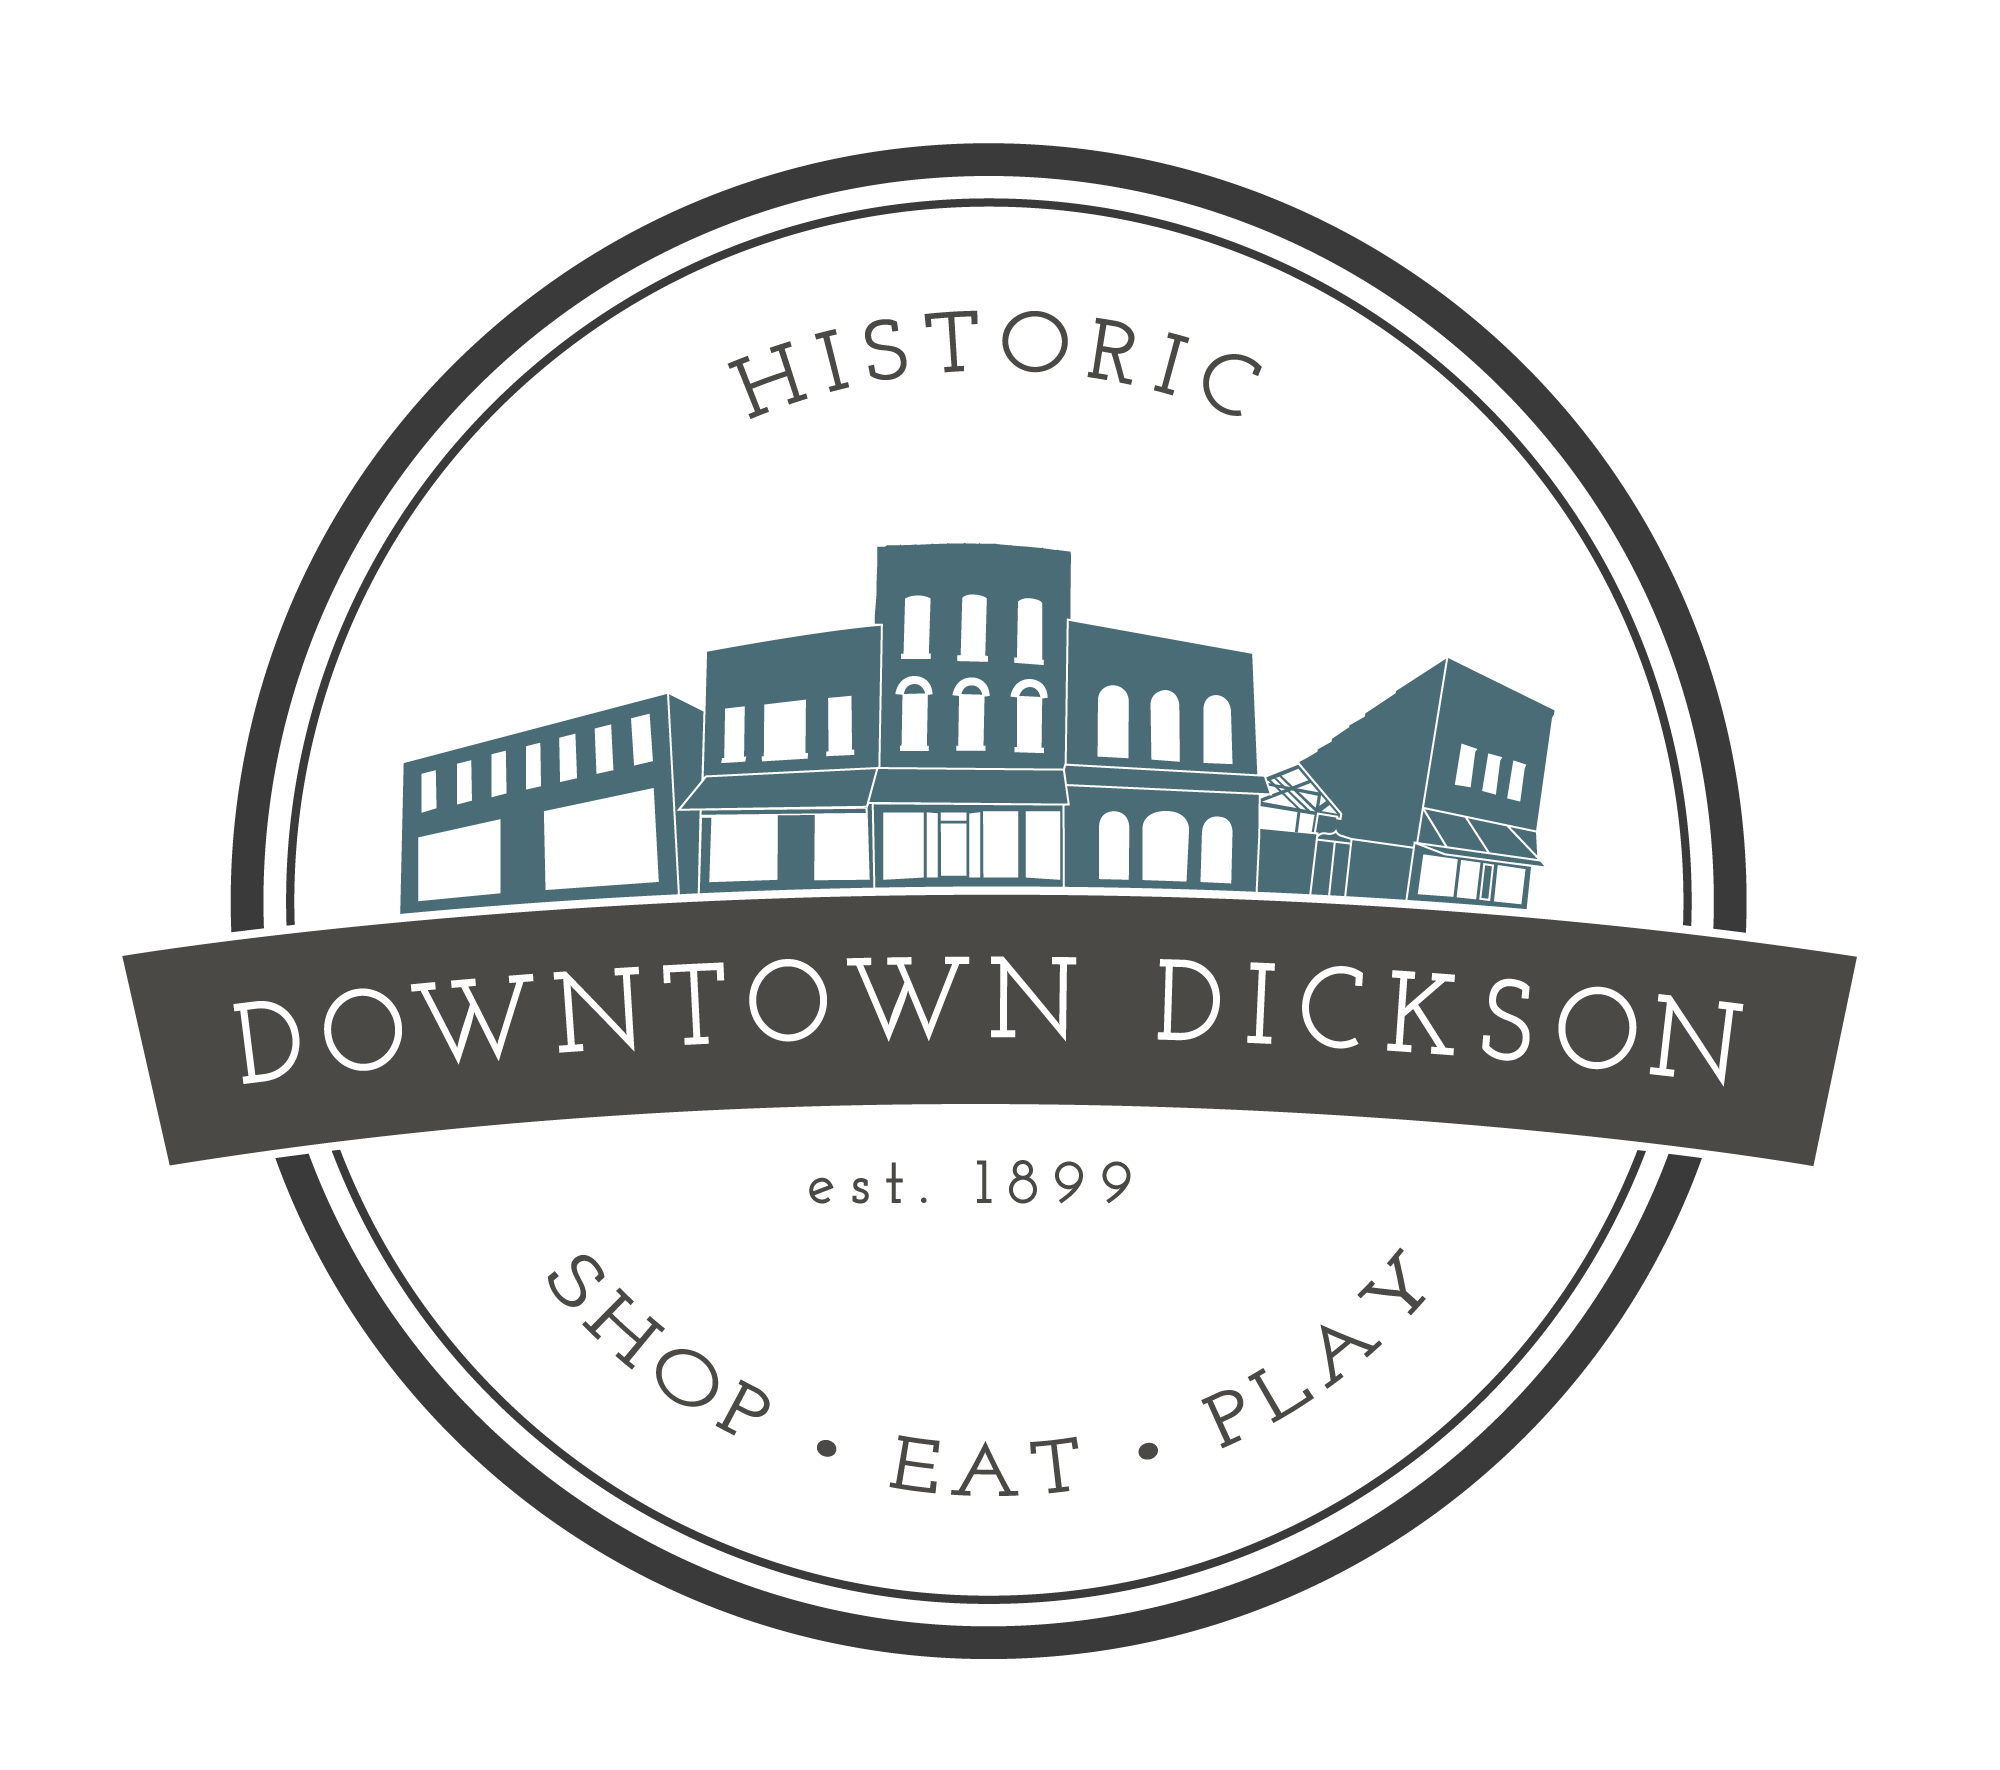 Downtown Dickson, Tennessee